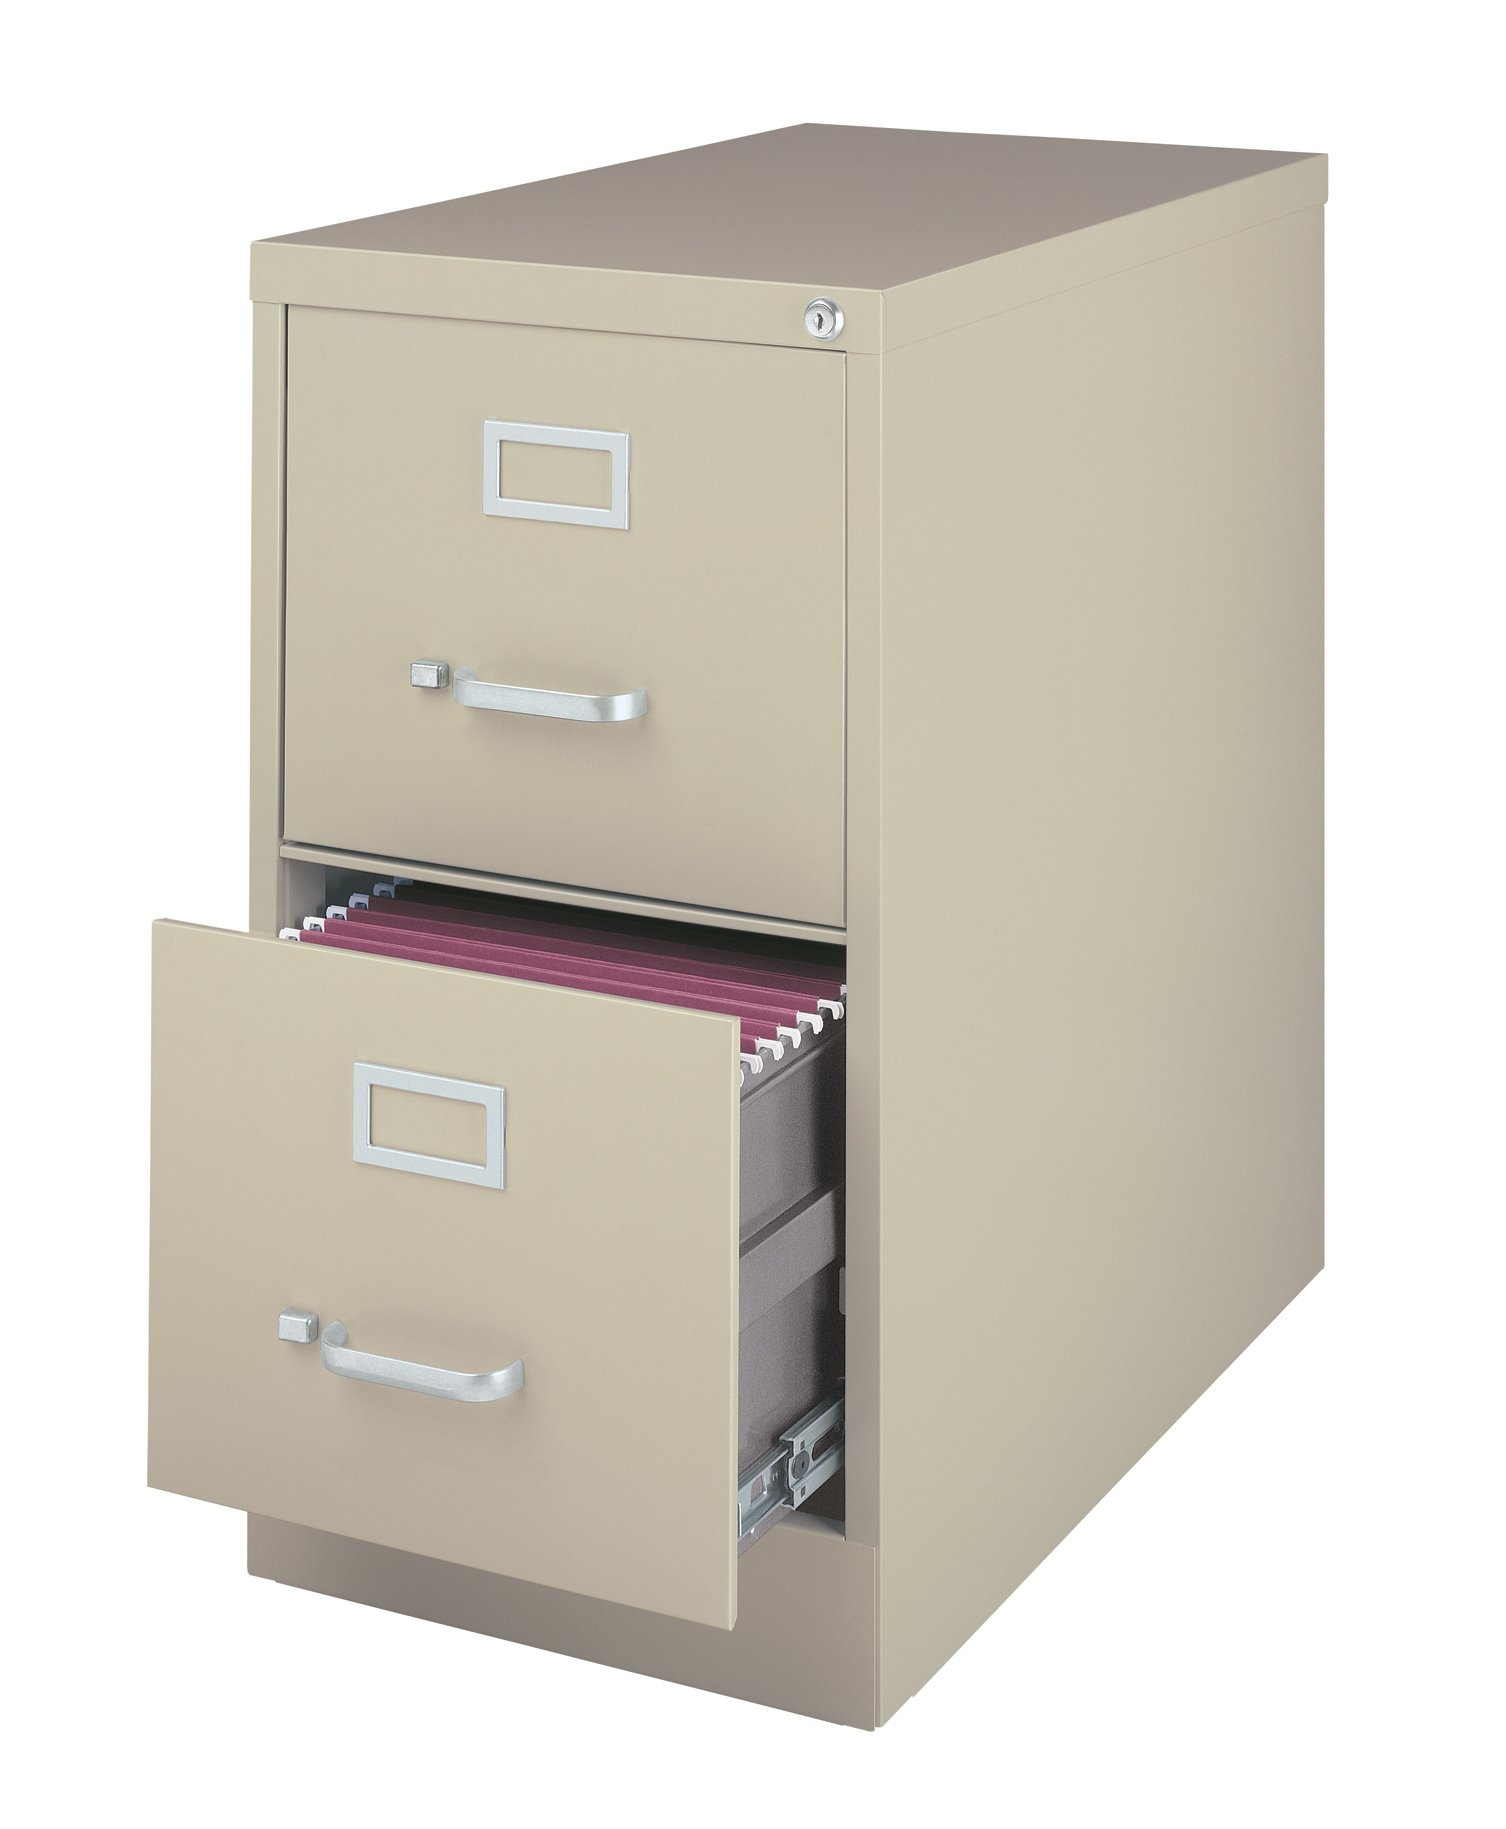 Office Dimensions Commercial Grade 25'' Deep 2 Drawer Letter-Width Vertical File Cabinet, Putty